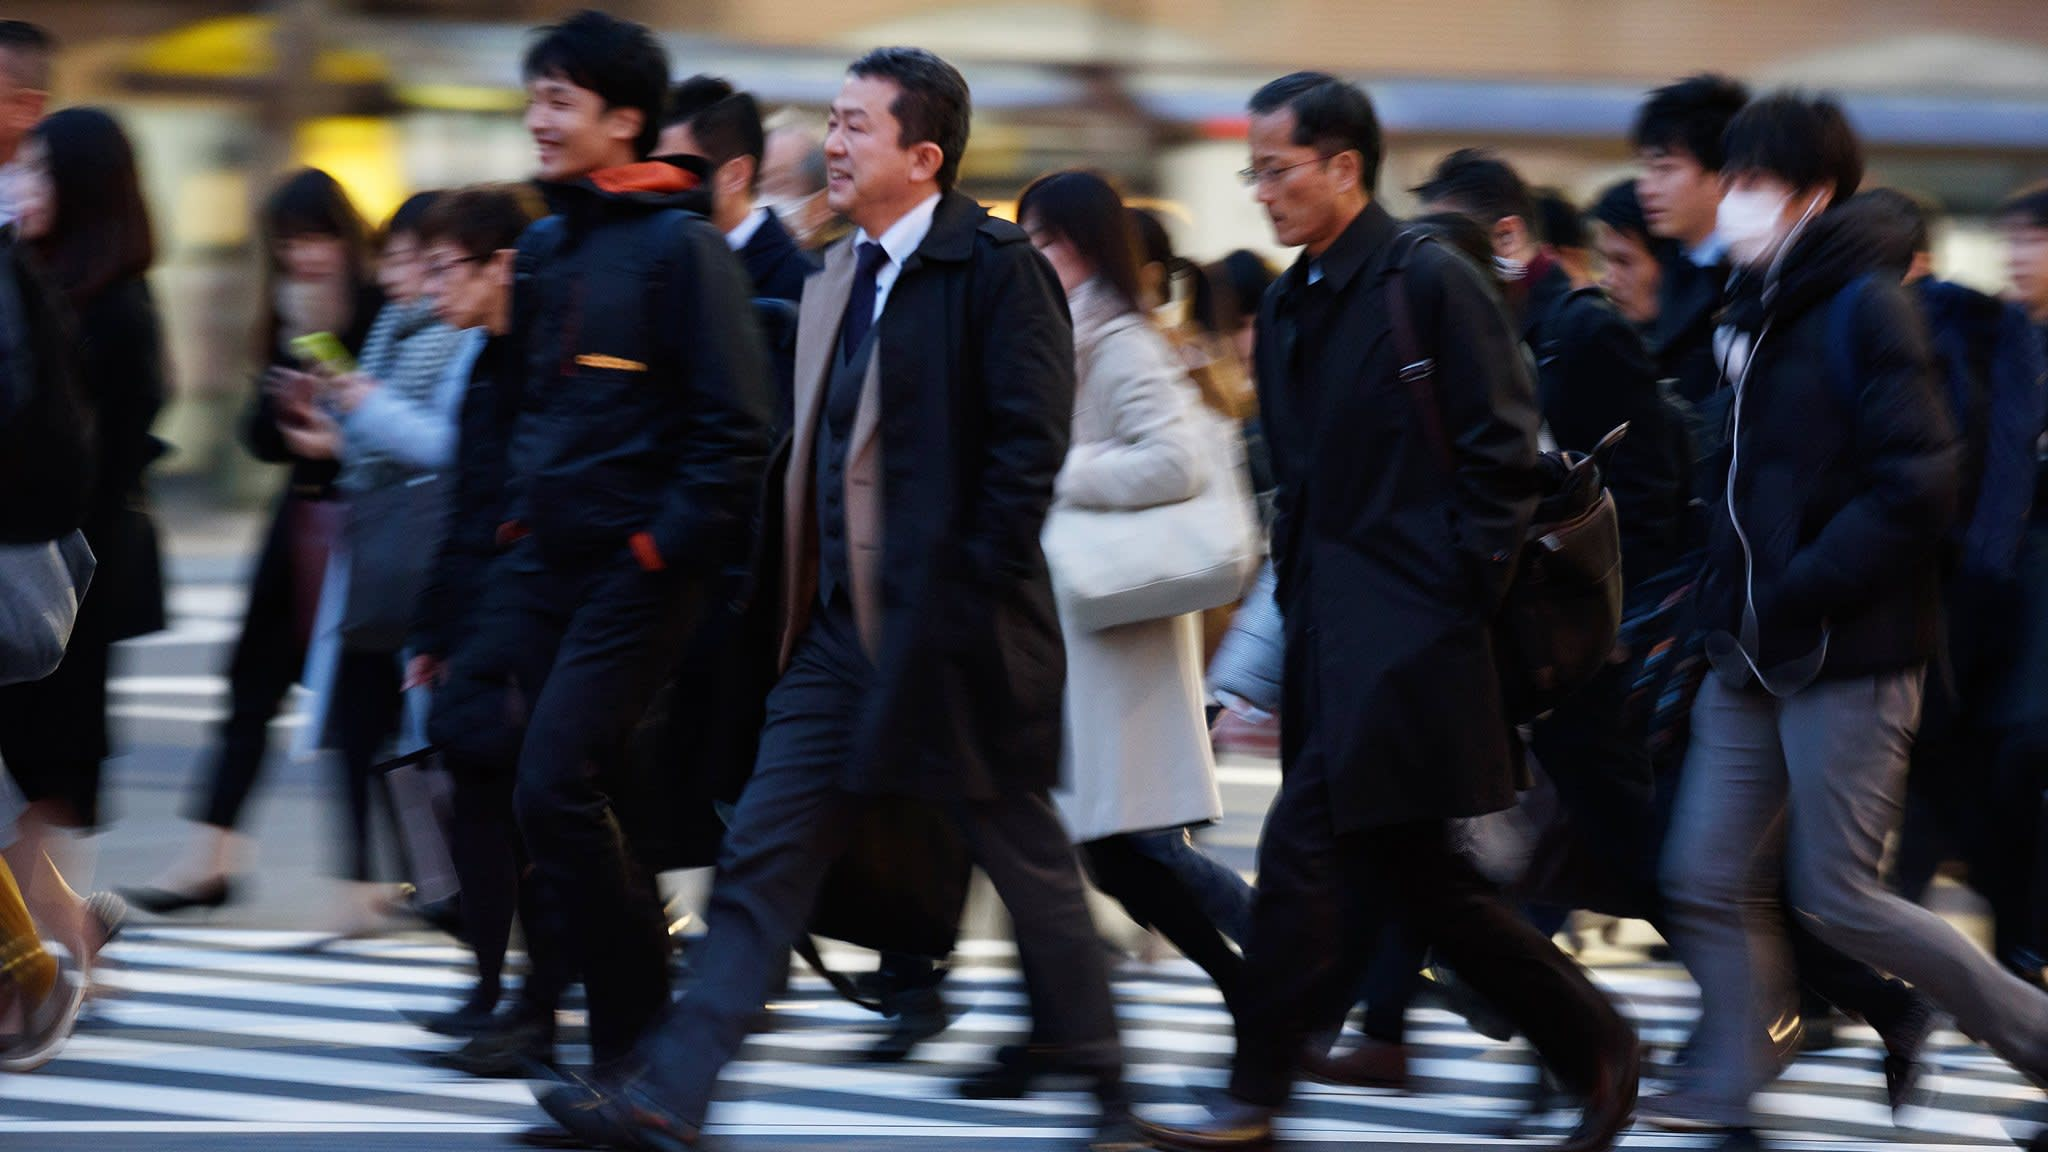 Pay jump for contract staff signals shake-up in Japan's job market | Financial Times